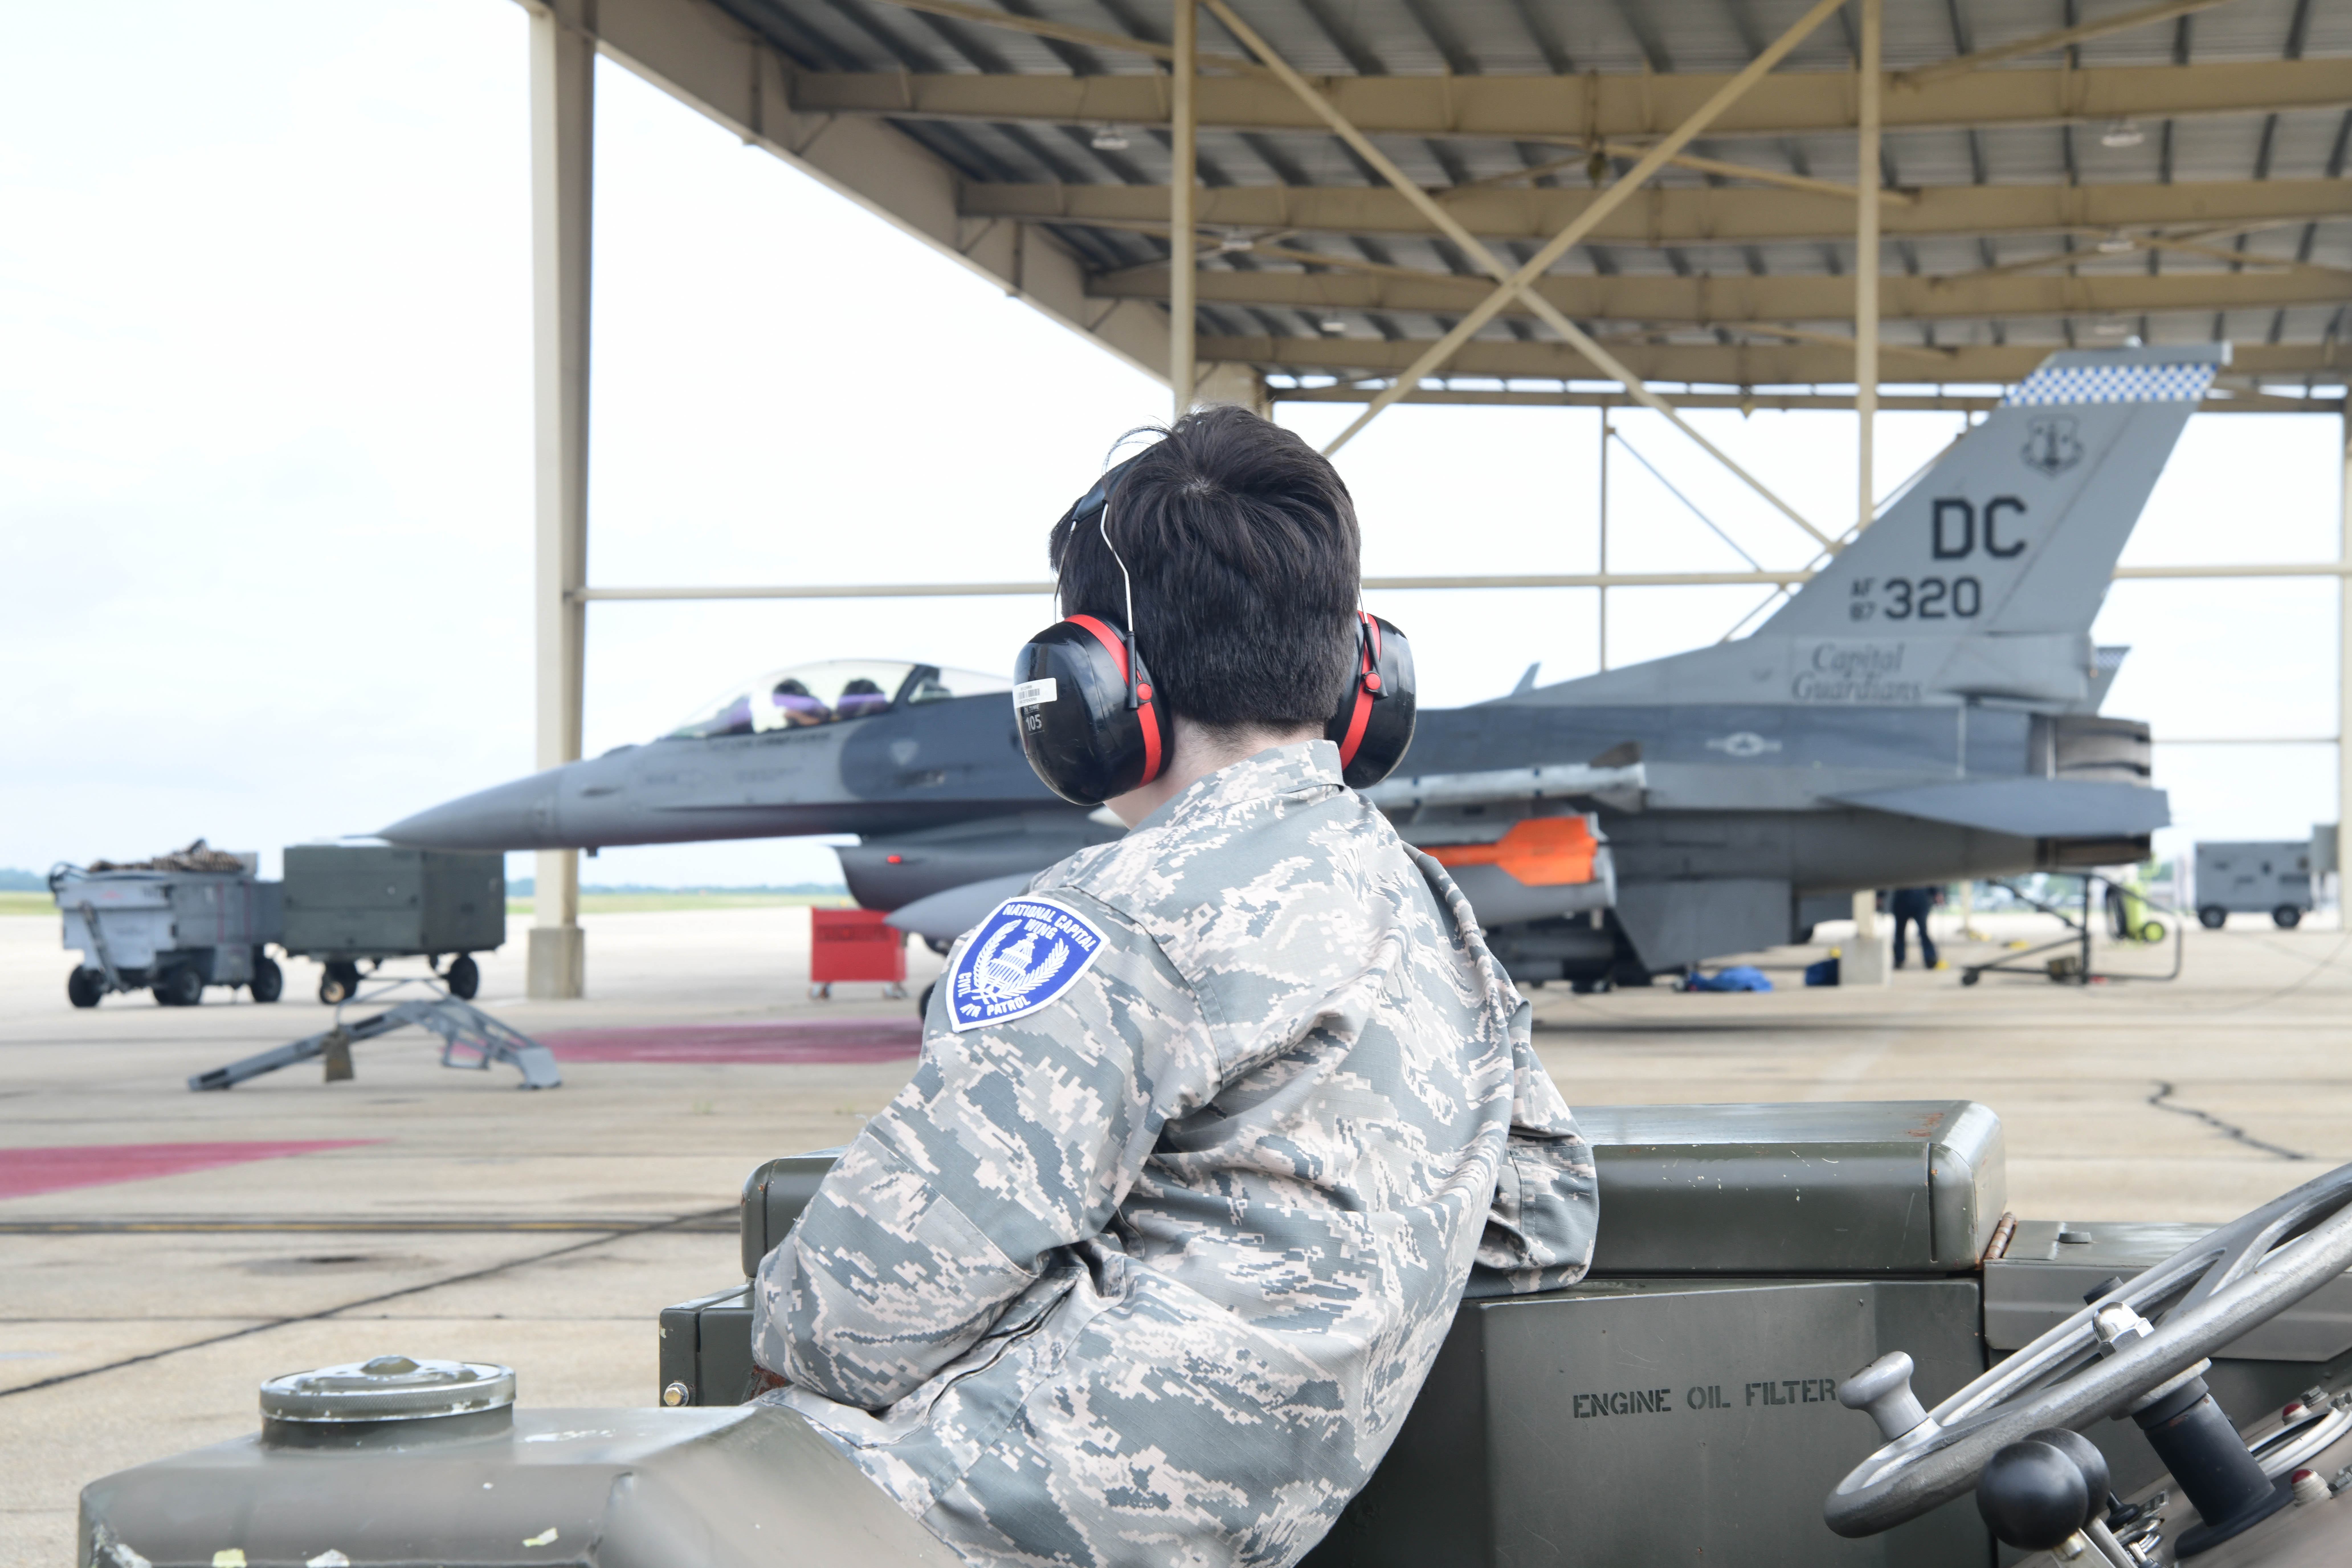 A cadet from Civil Air Patrol's National Capital Wing watches an F-16 Fighting Falcon being prepared for flight as part of a job shadow program.